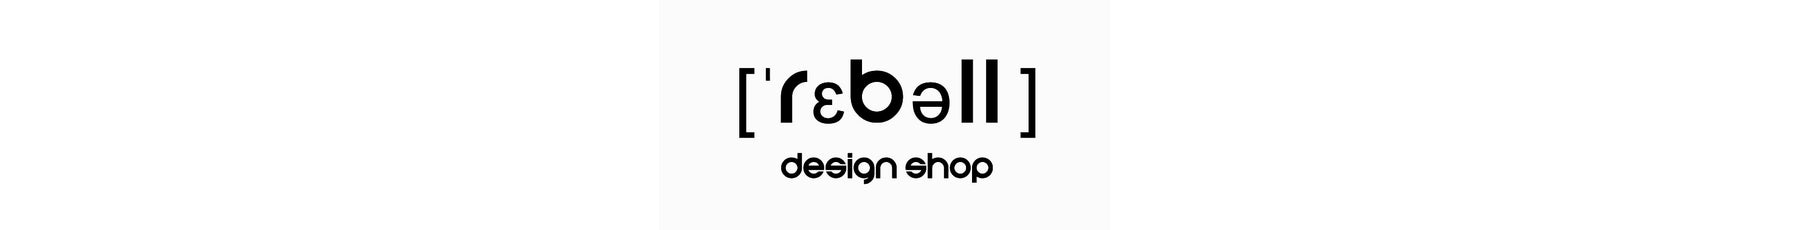 rebelldesignshop